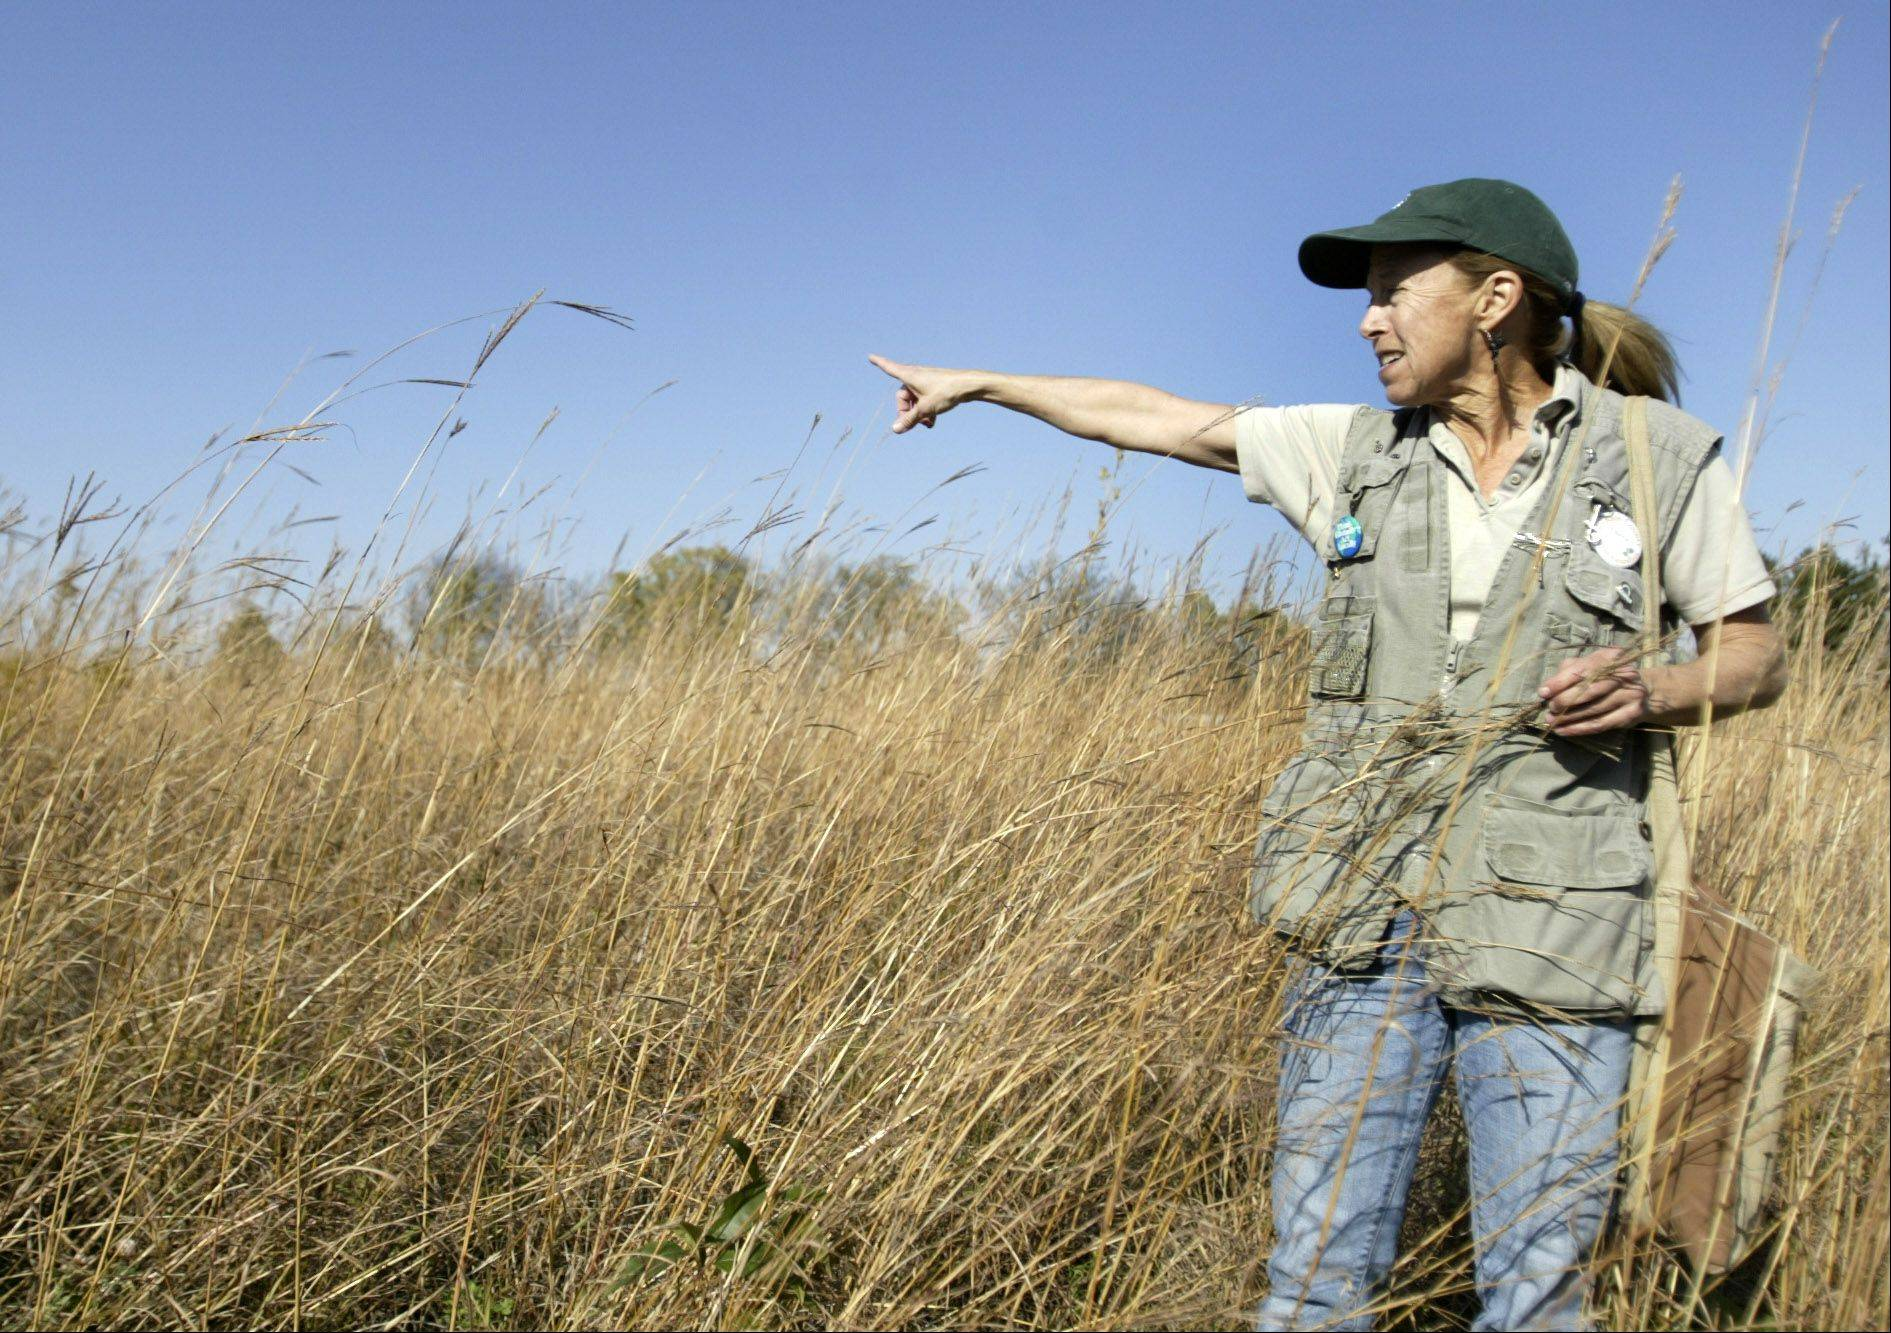 Valerie Blaine, a naturalist with the Kane County Forest Preserve District, discusses the prairie at Muirhead Springs Forest Preserve during its opening two years ago in Plato Township. Some of the land ComEd desires for its high-tension power lines includes a portion of the forest preserve.